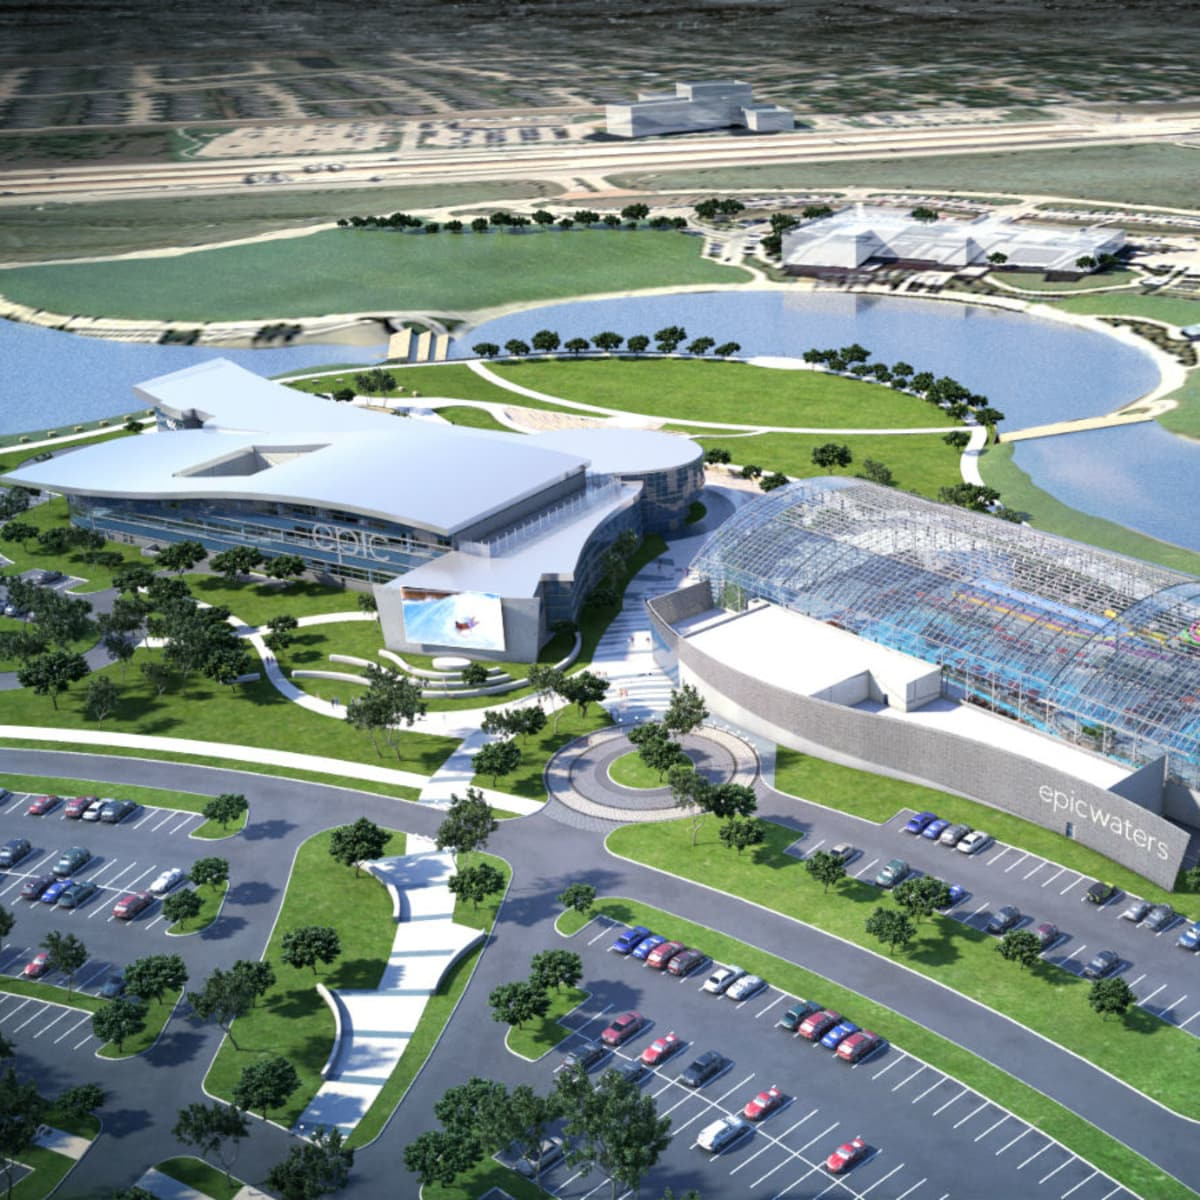 The Epic and Epic Waters Indoor Waterpark rendering